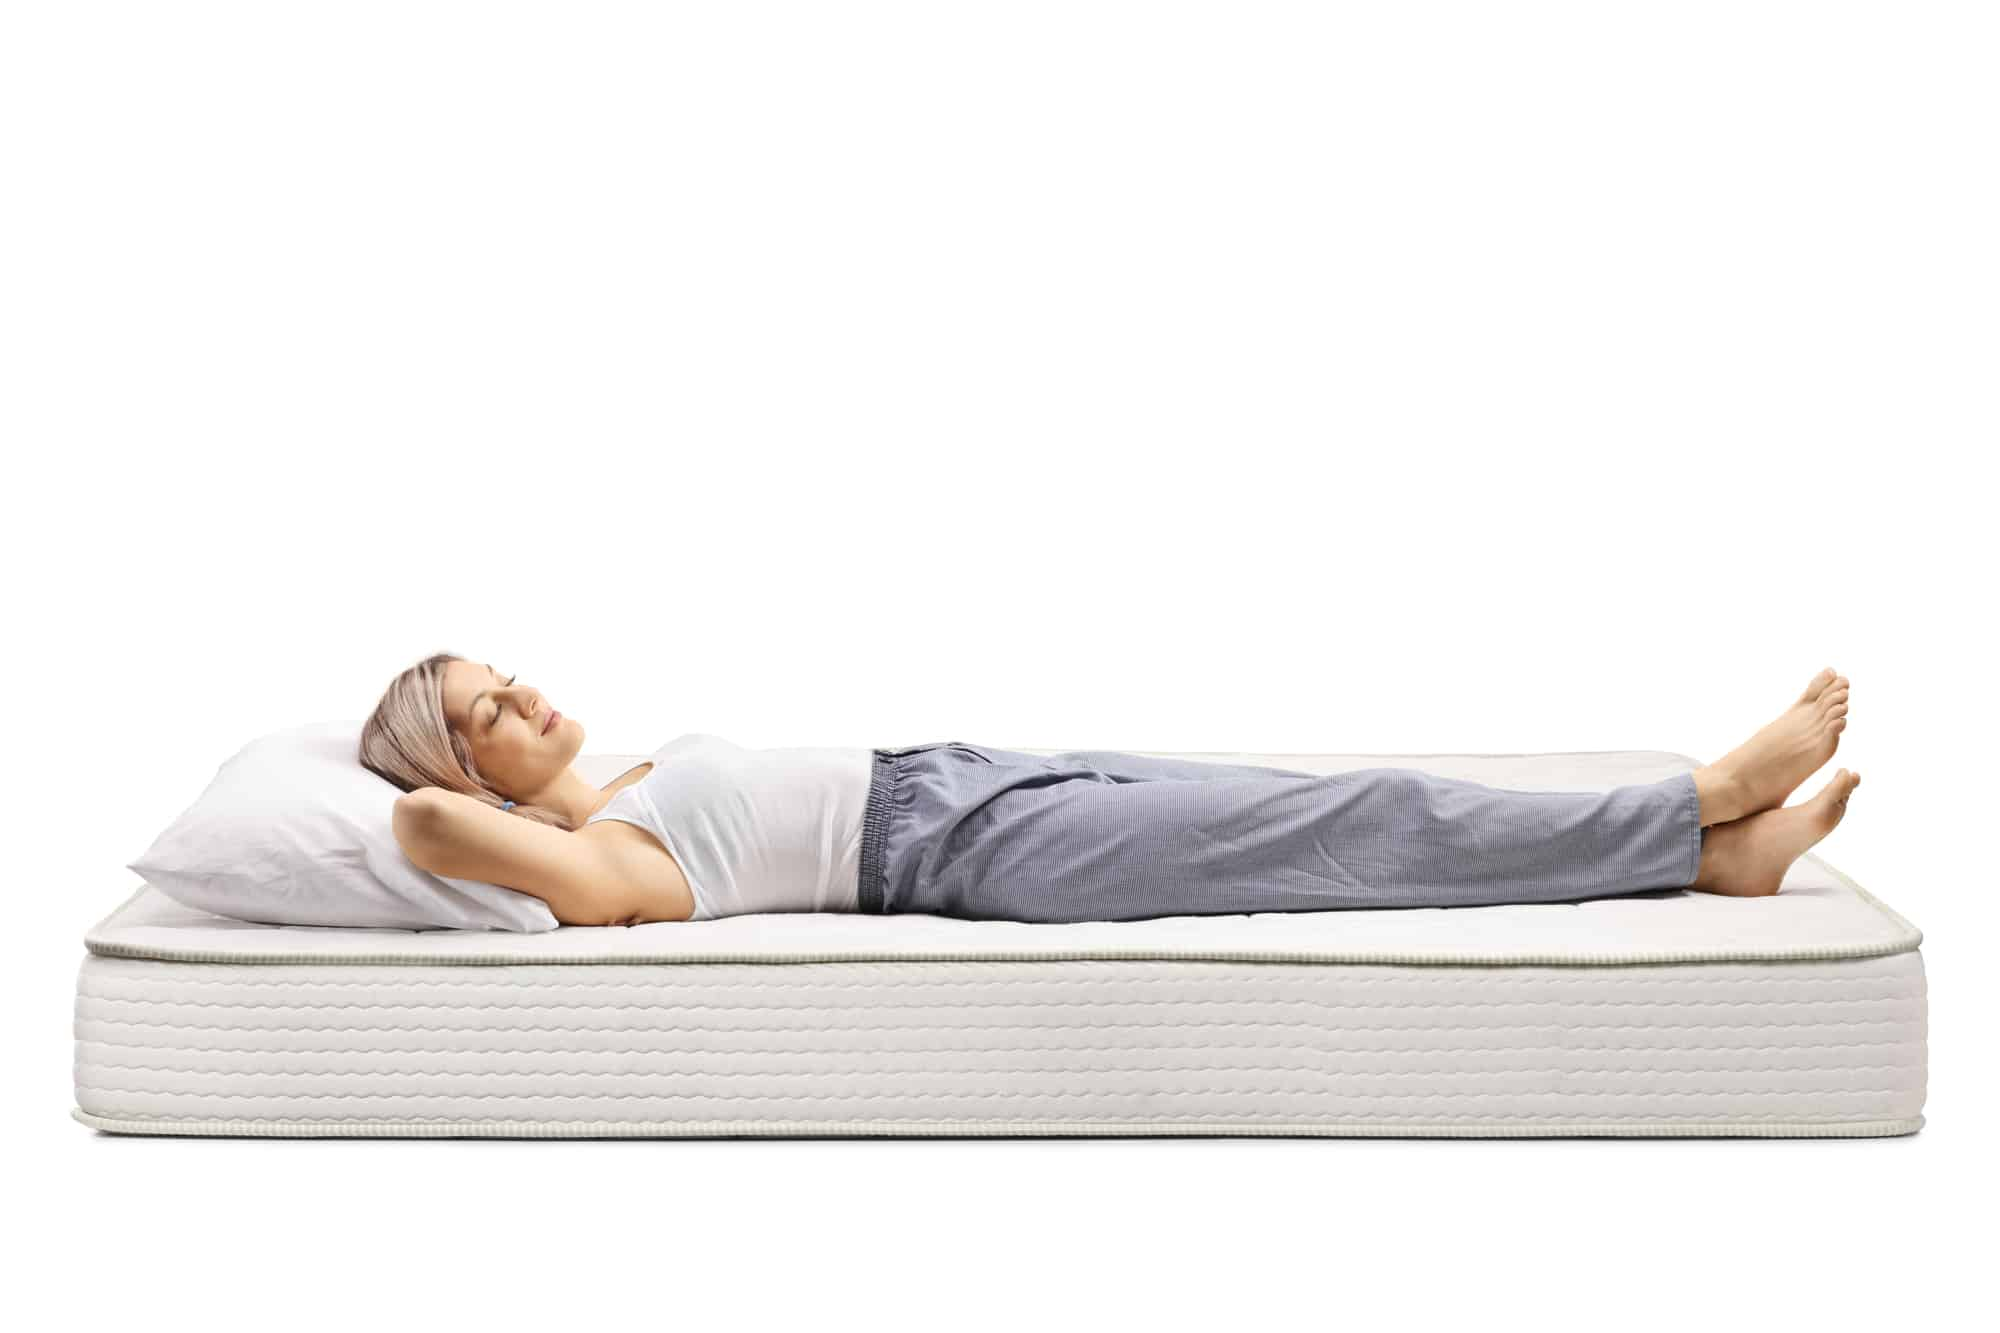 Memory Foam Moulds To Your Body